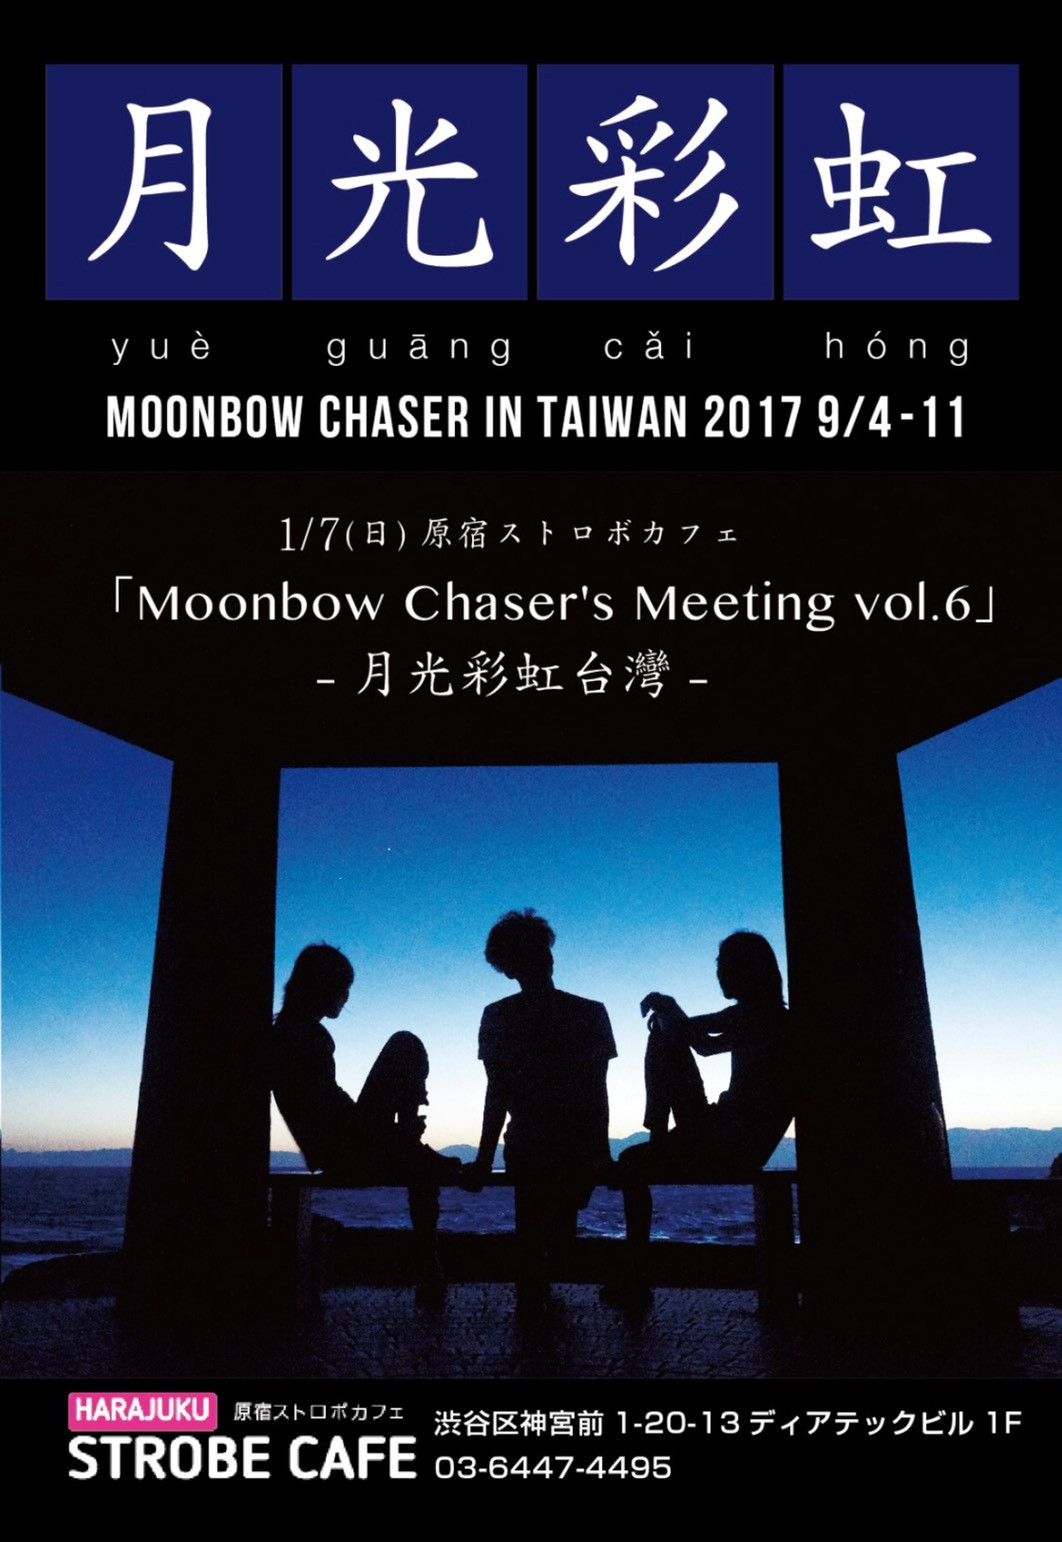 Moonbow Chaser旅トークイベント「Moonbow Chaser's Meeting vol.6-月光彩虹台灣-」